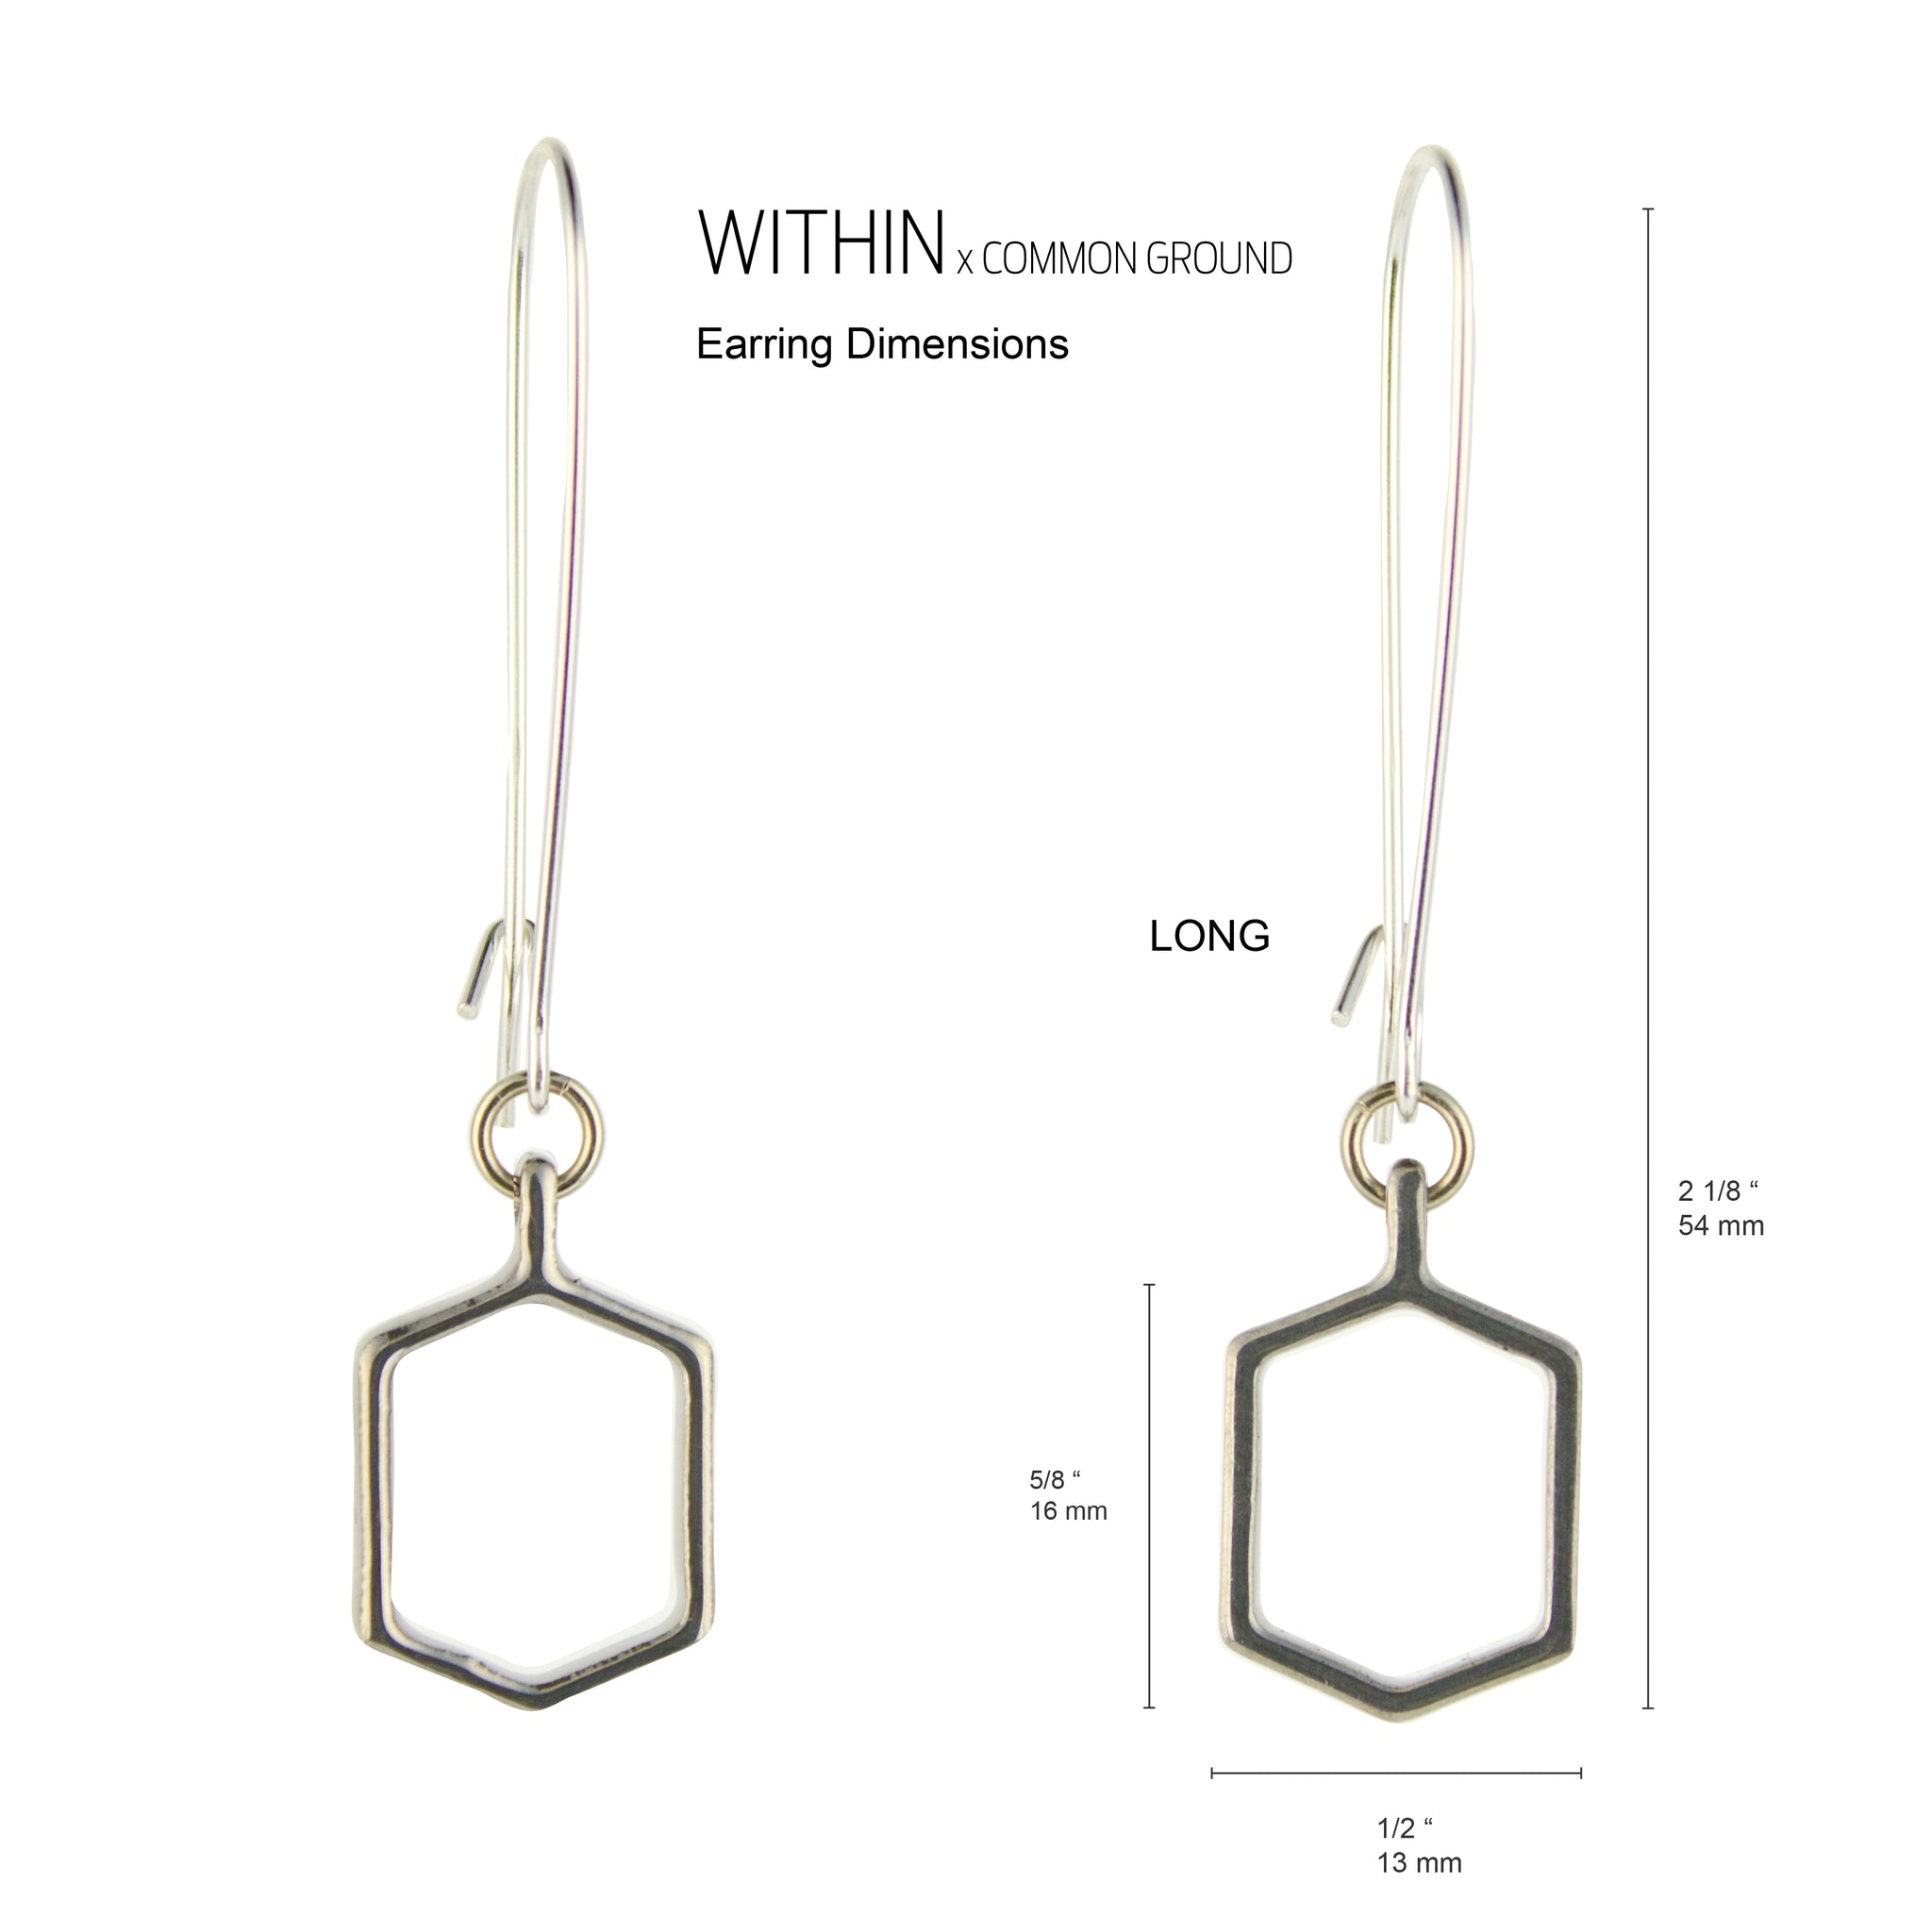 Super_Chrome - WITHIN x COMMON GROUND Jewelry Dim View